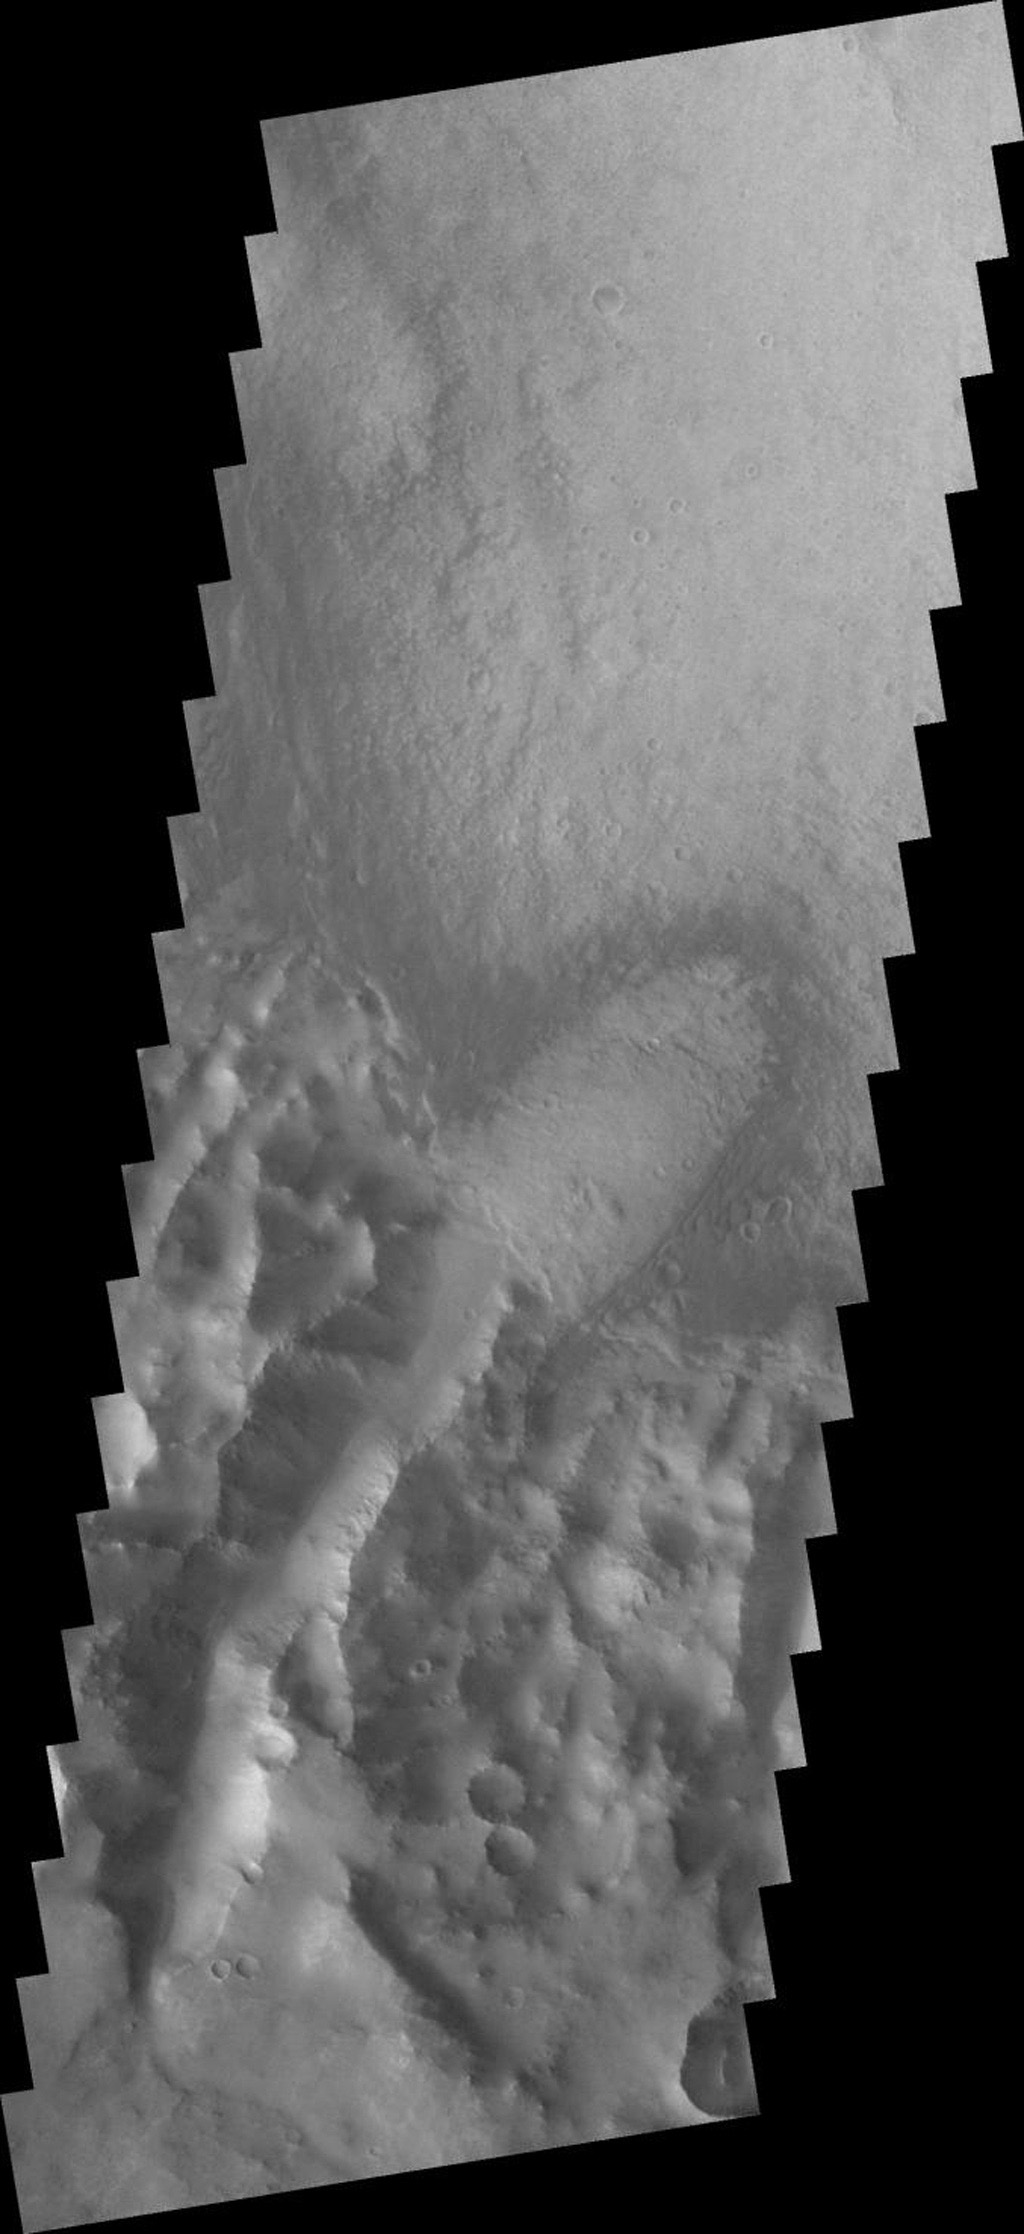 This image from NASA's 2001 Mars Odyssey spacecraft shows a large portion of etched terrain near the south pole of Mars.